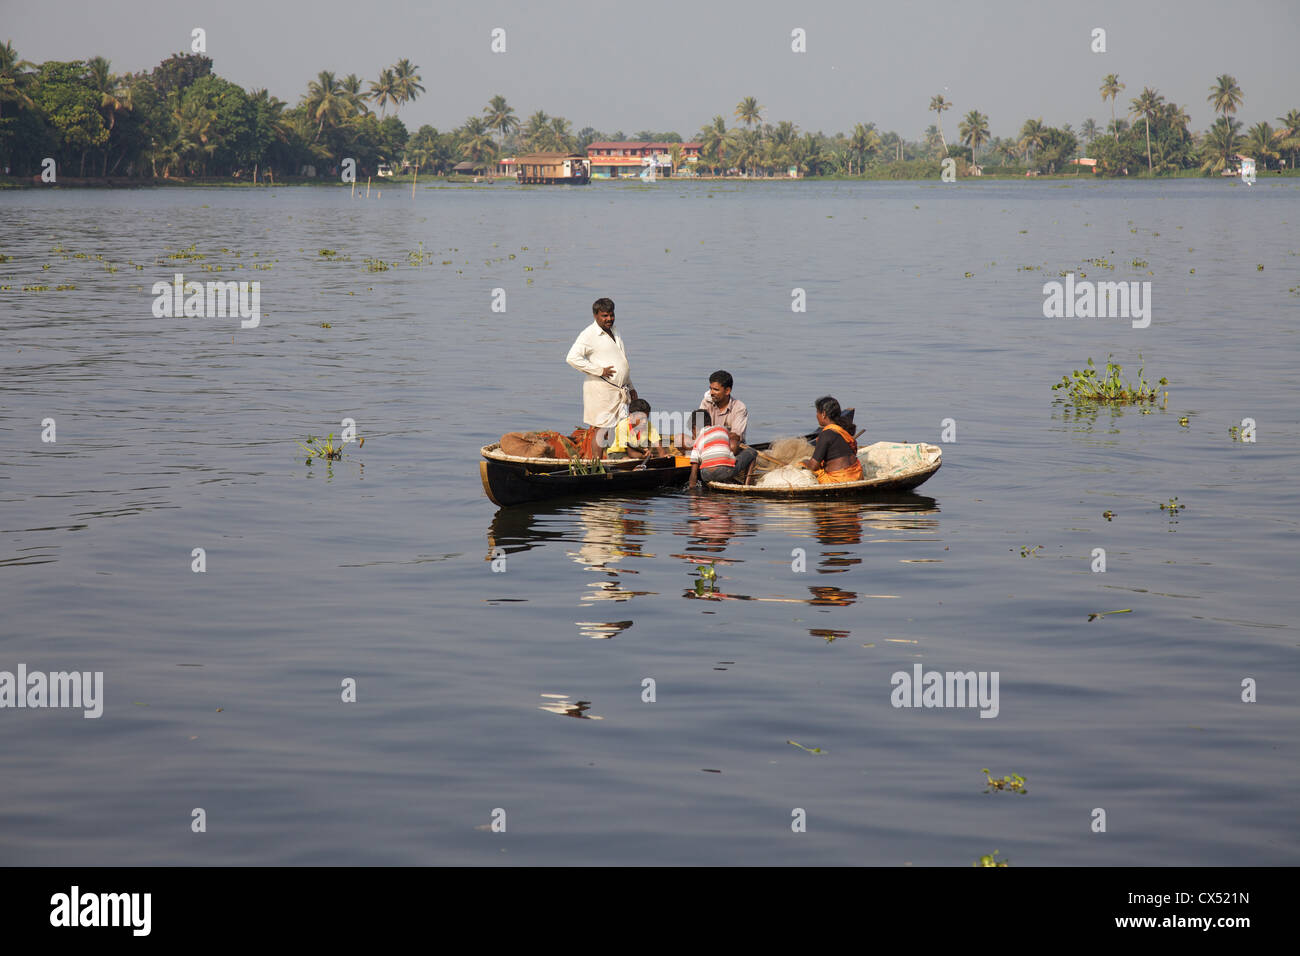 River scene from a houseboat tour on the Kerala Backwaters, Malabar coast, South West India - Stock Image